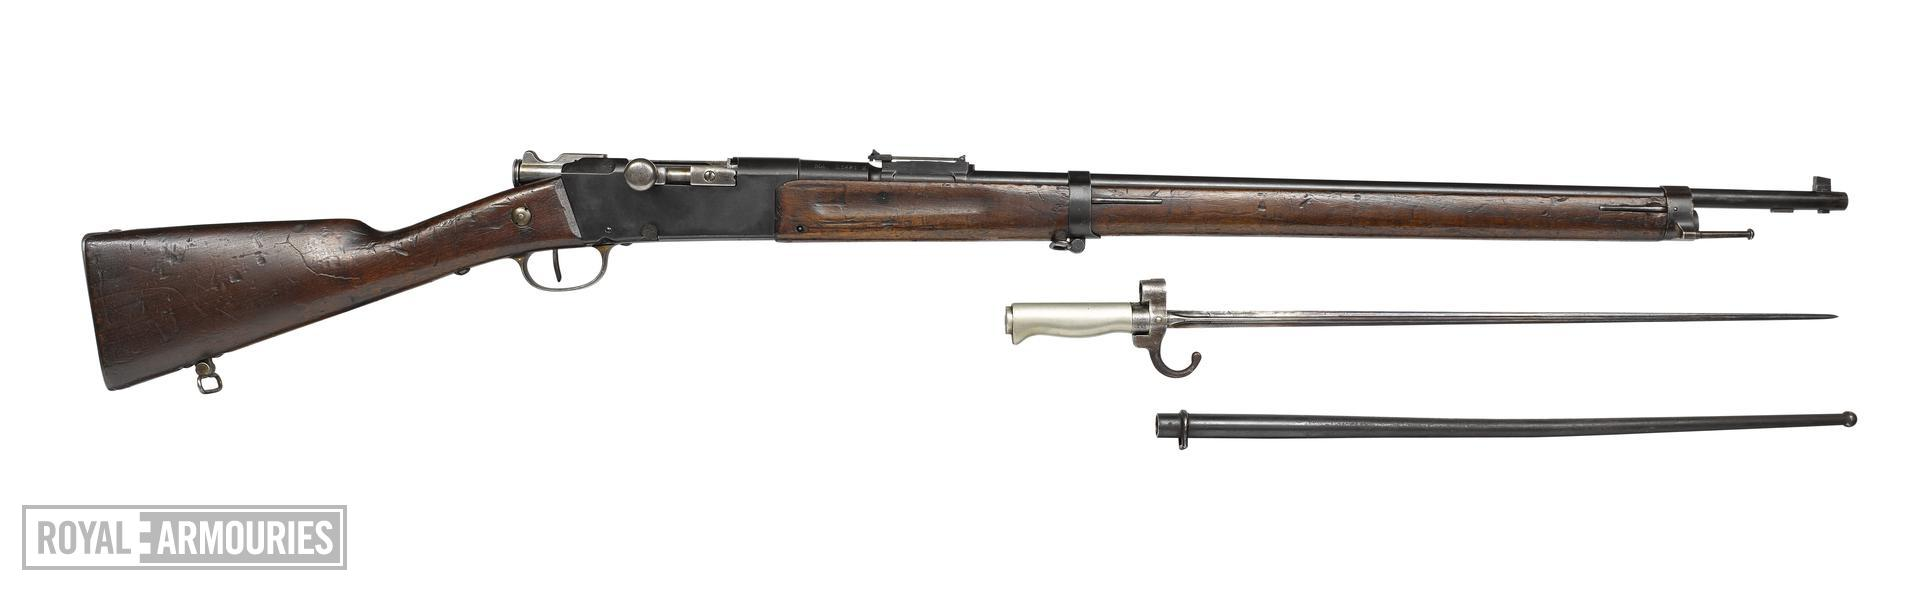 Modèle 1886/93 'Lebel' rifle and bayonet - Arms of the First World War